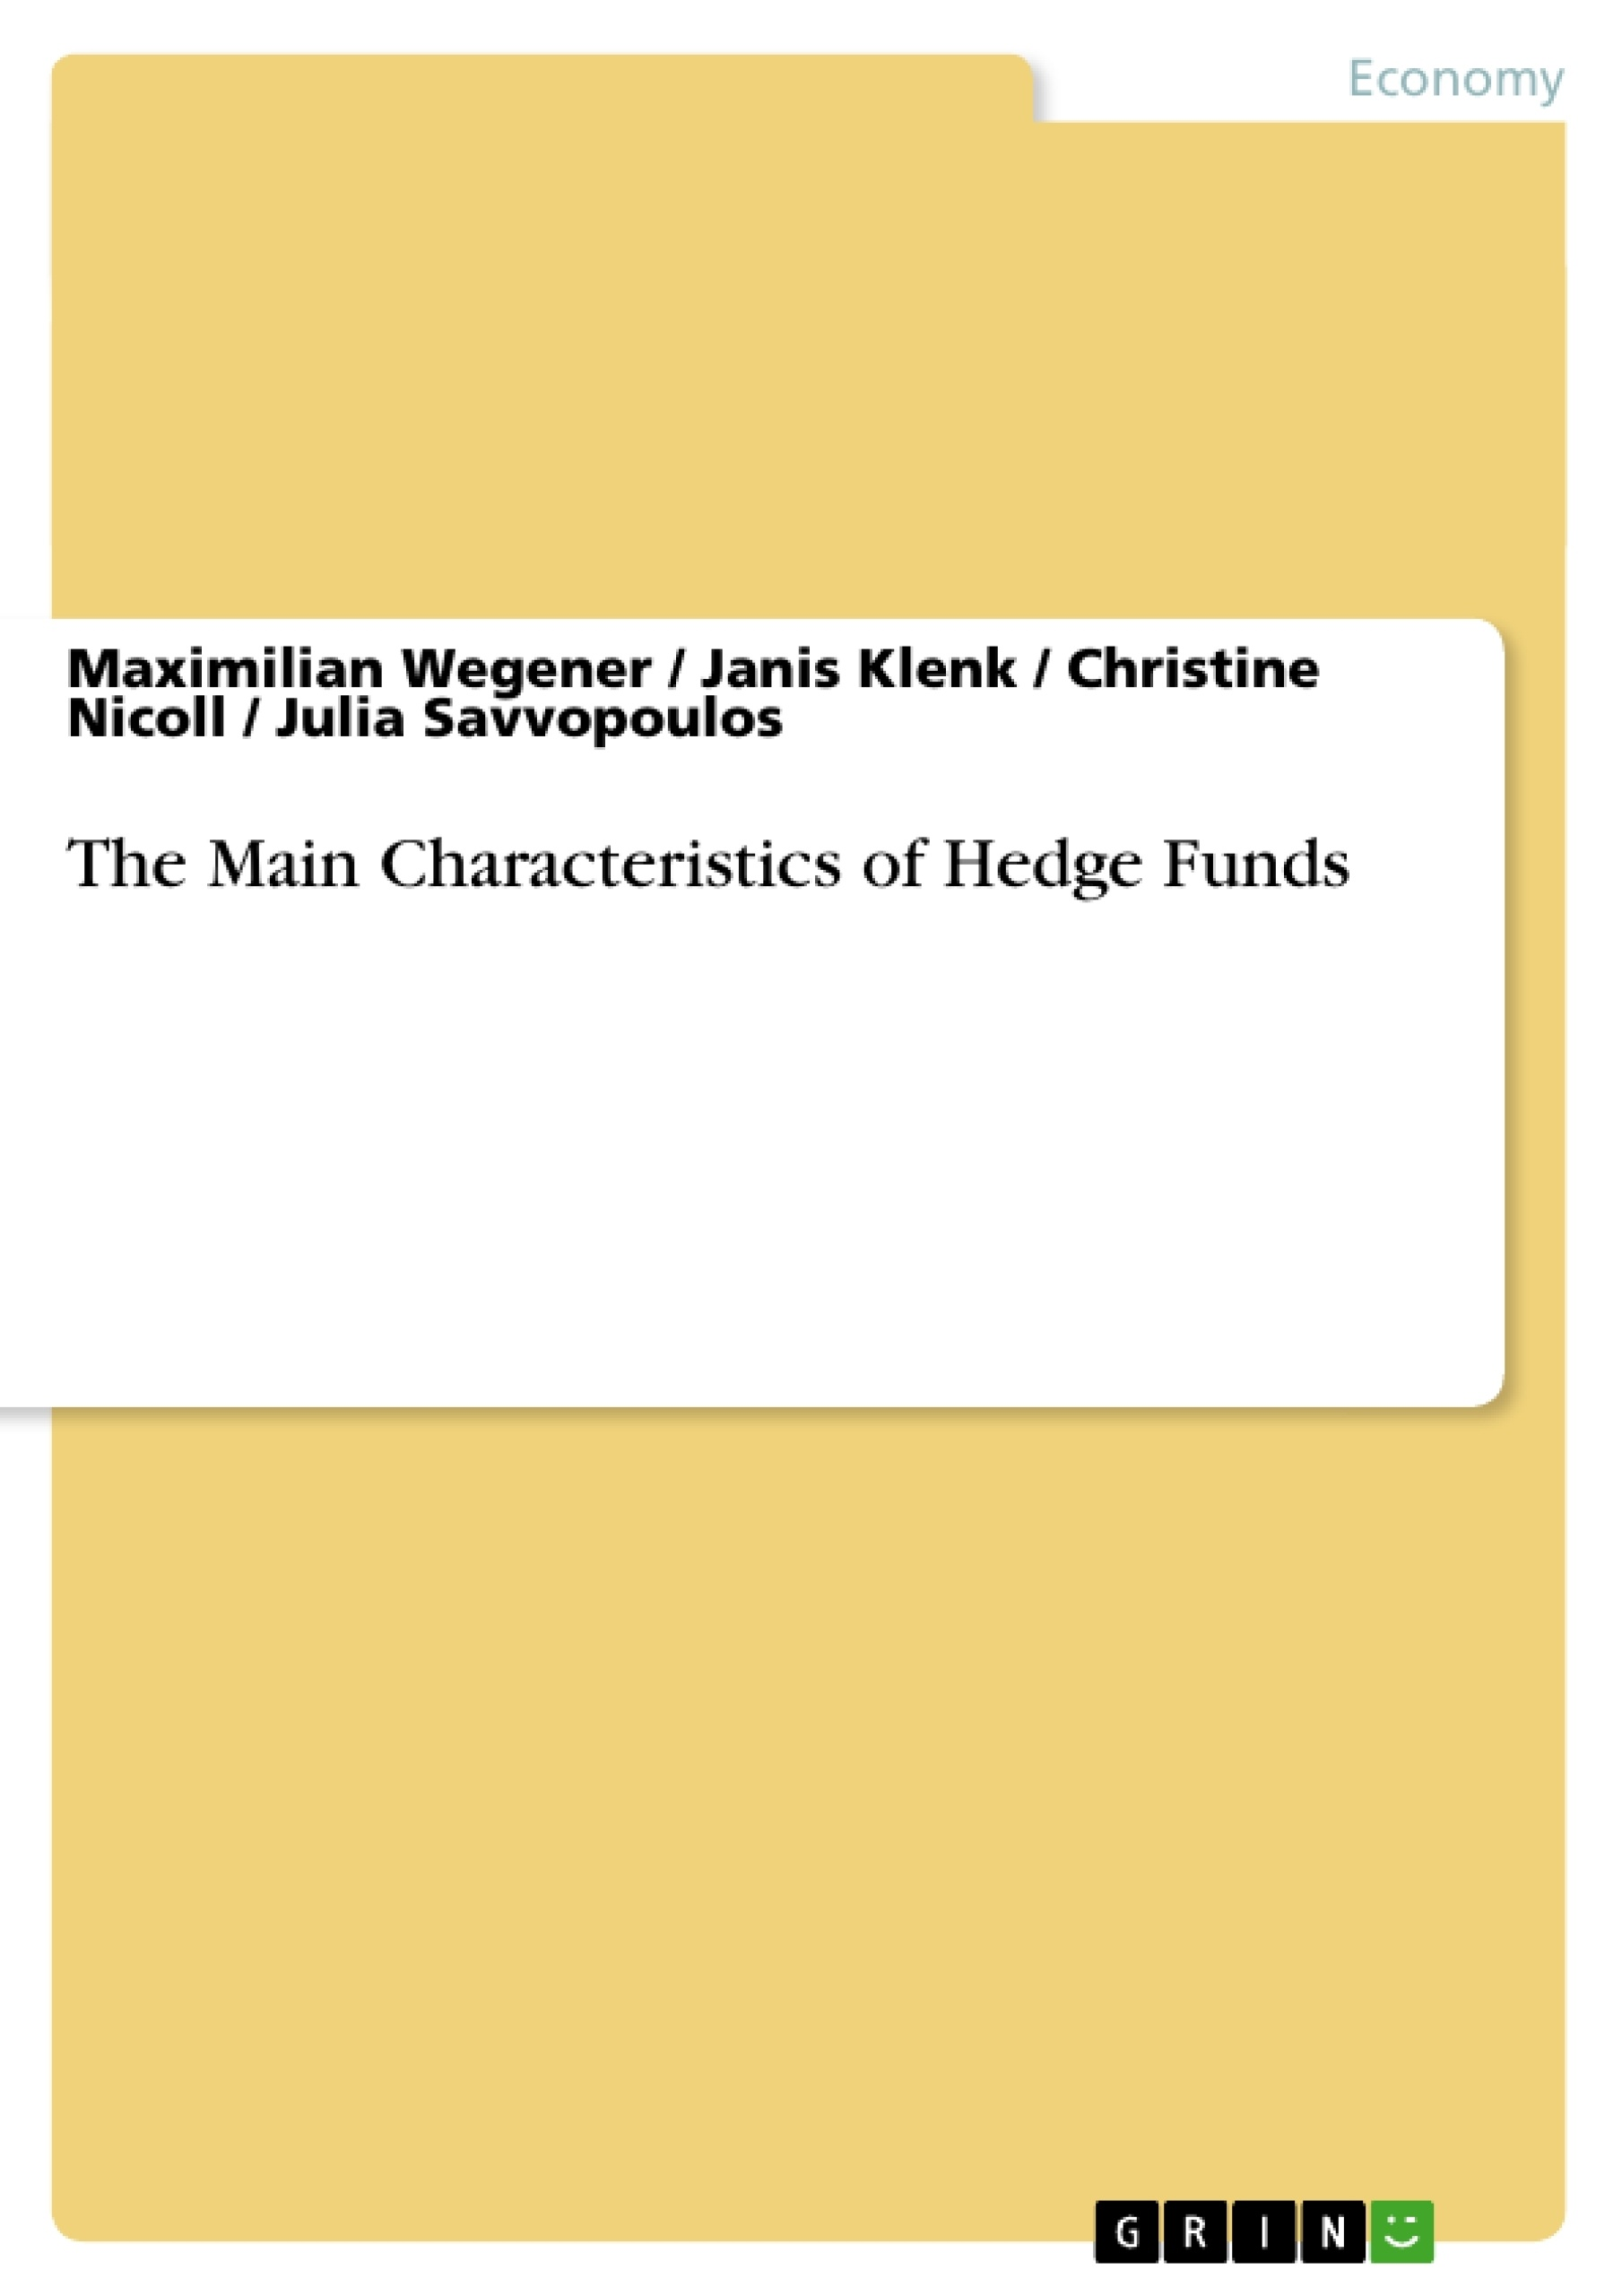 Title: The Main Characteristics of Hedge Funds